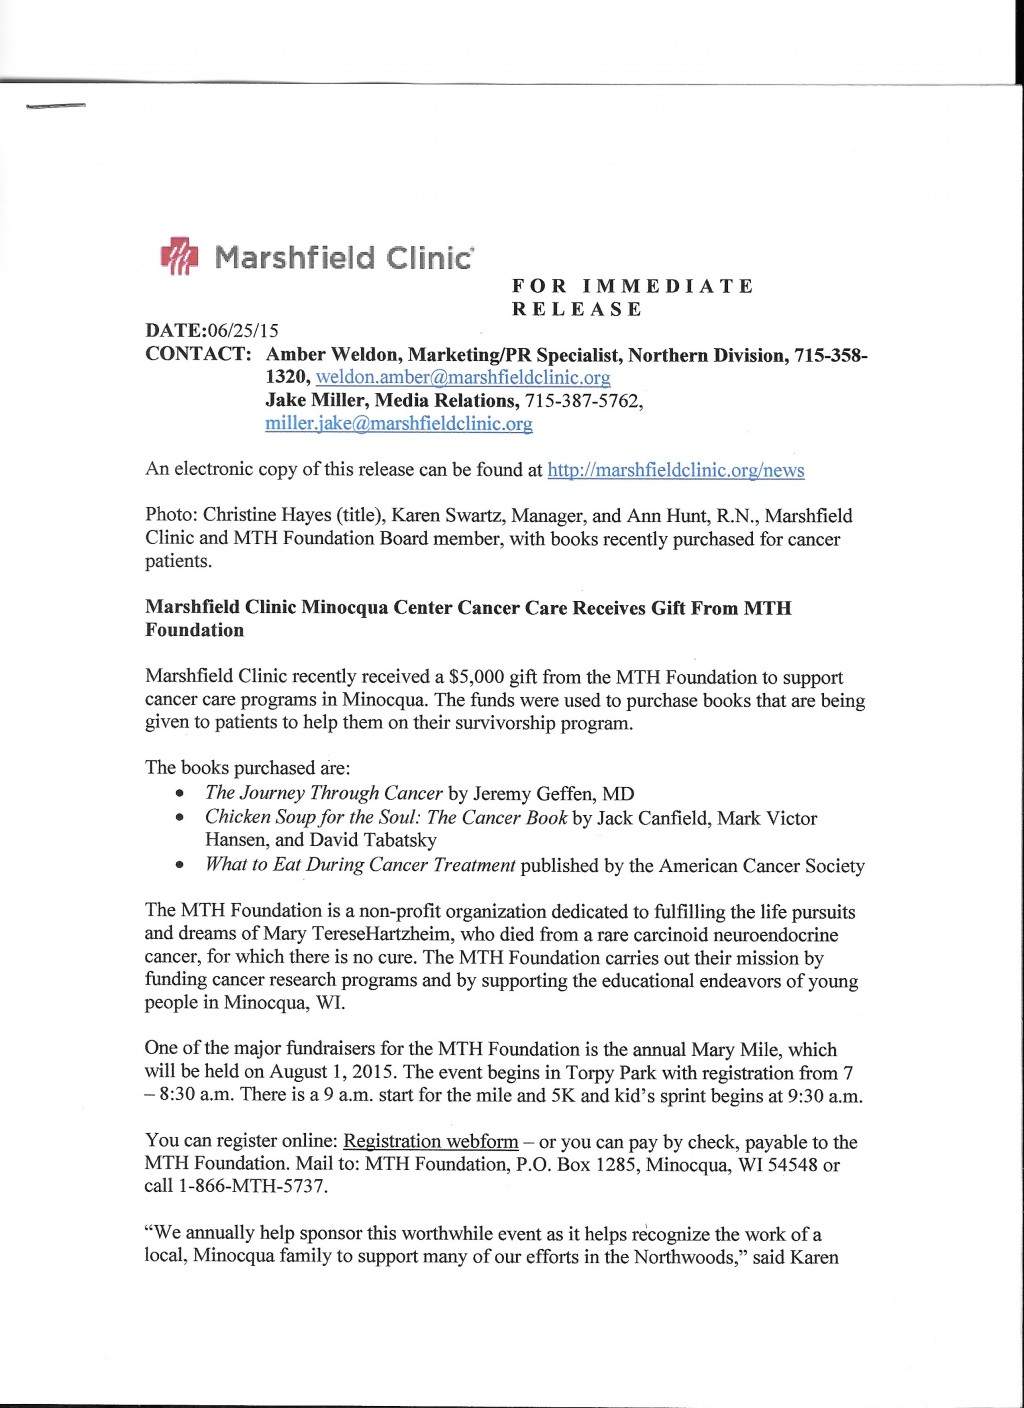 023 Research Paper Mth Marshfield Clinic Press Release Cancer Unique Outline Skin Breast Lung Large